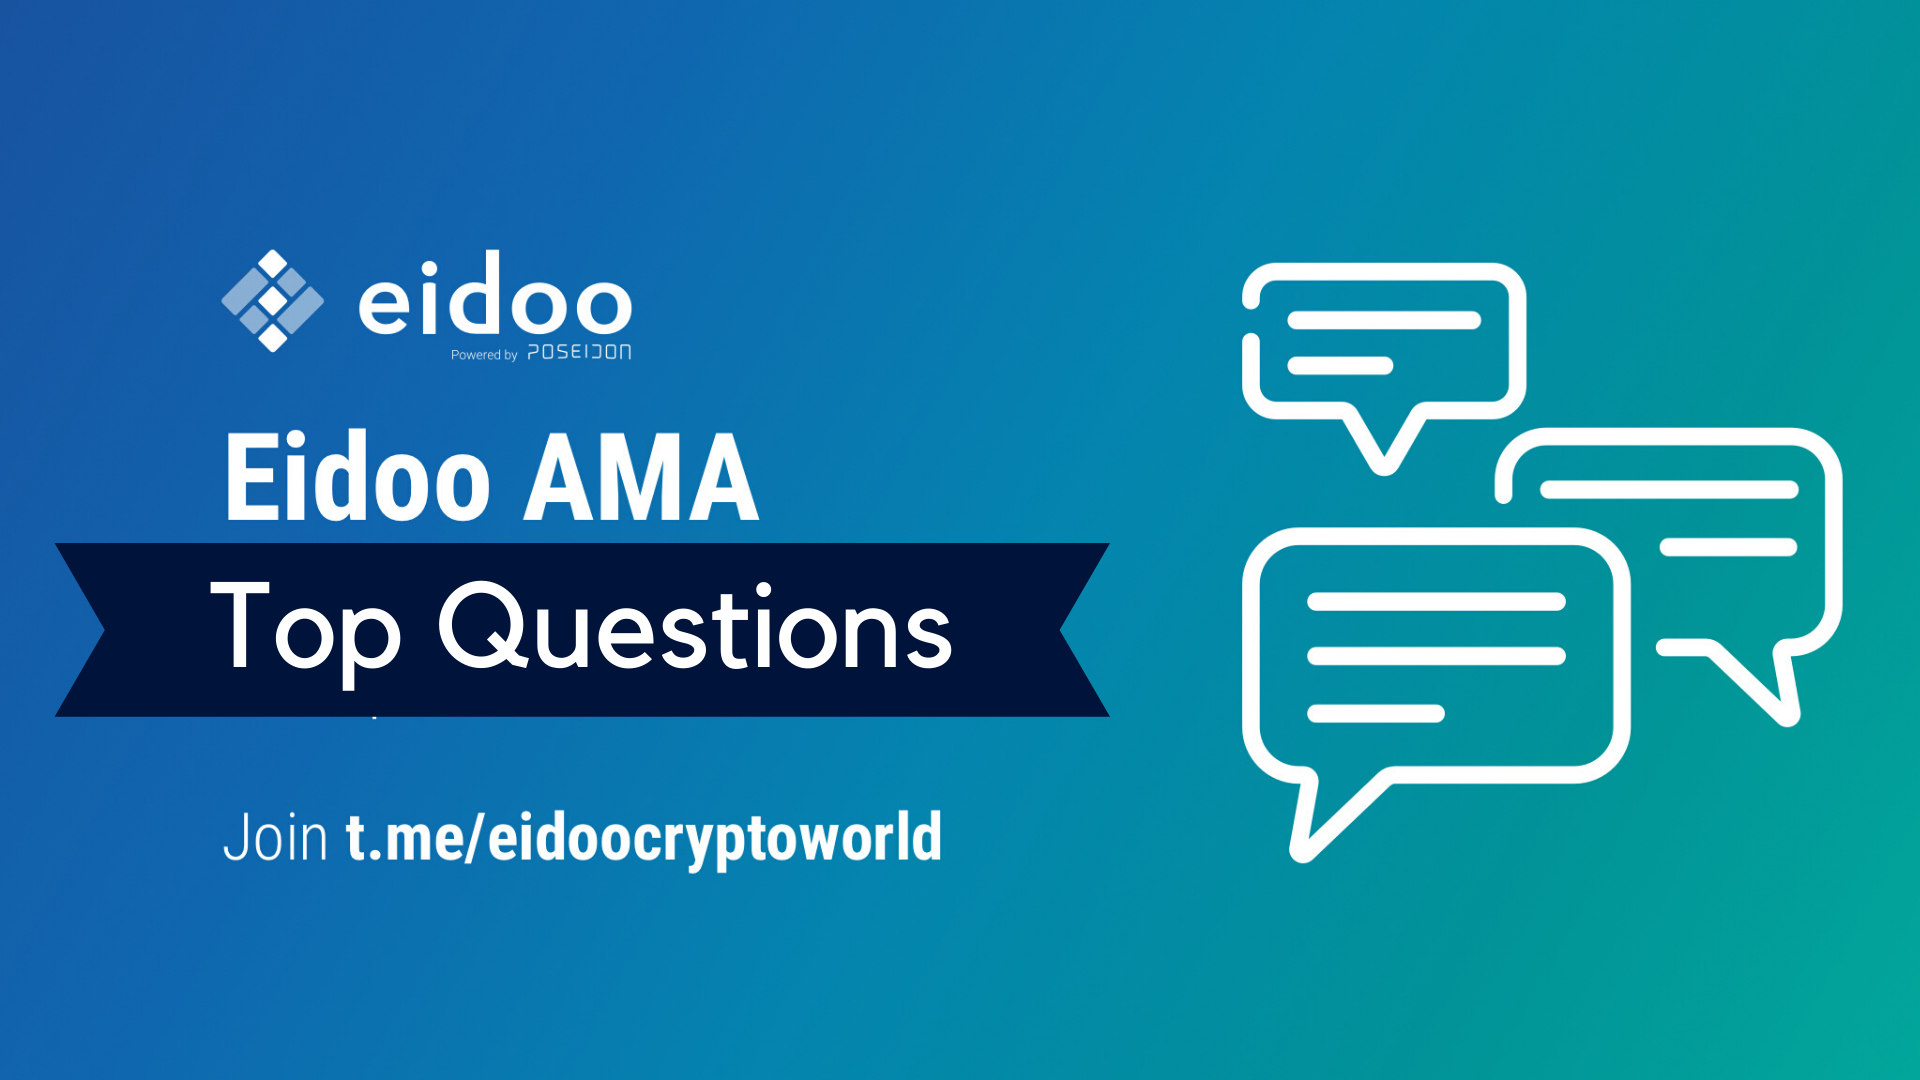 Top Questions from our Eidoo AMA